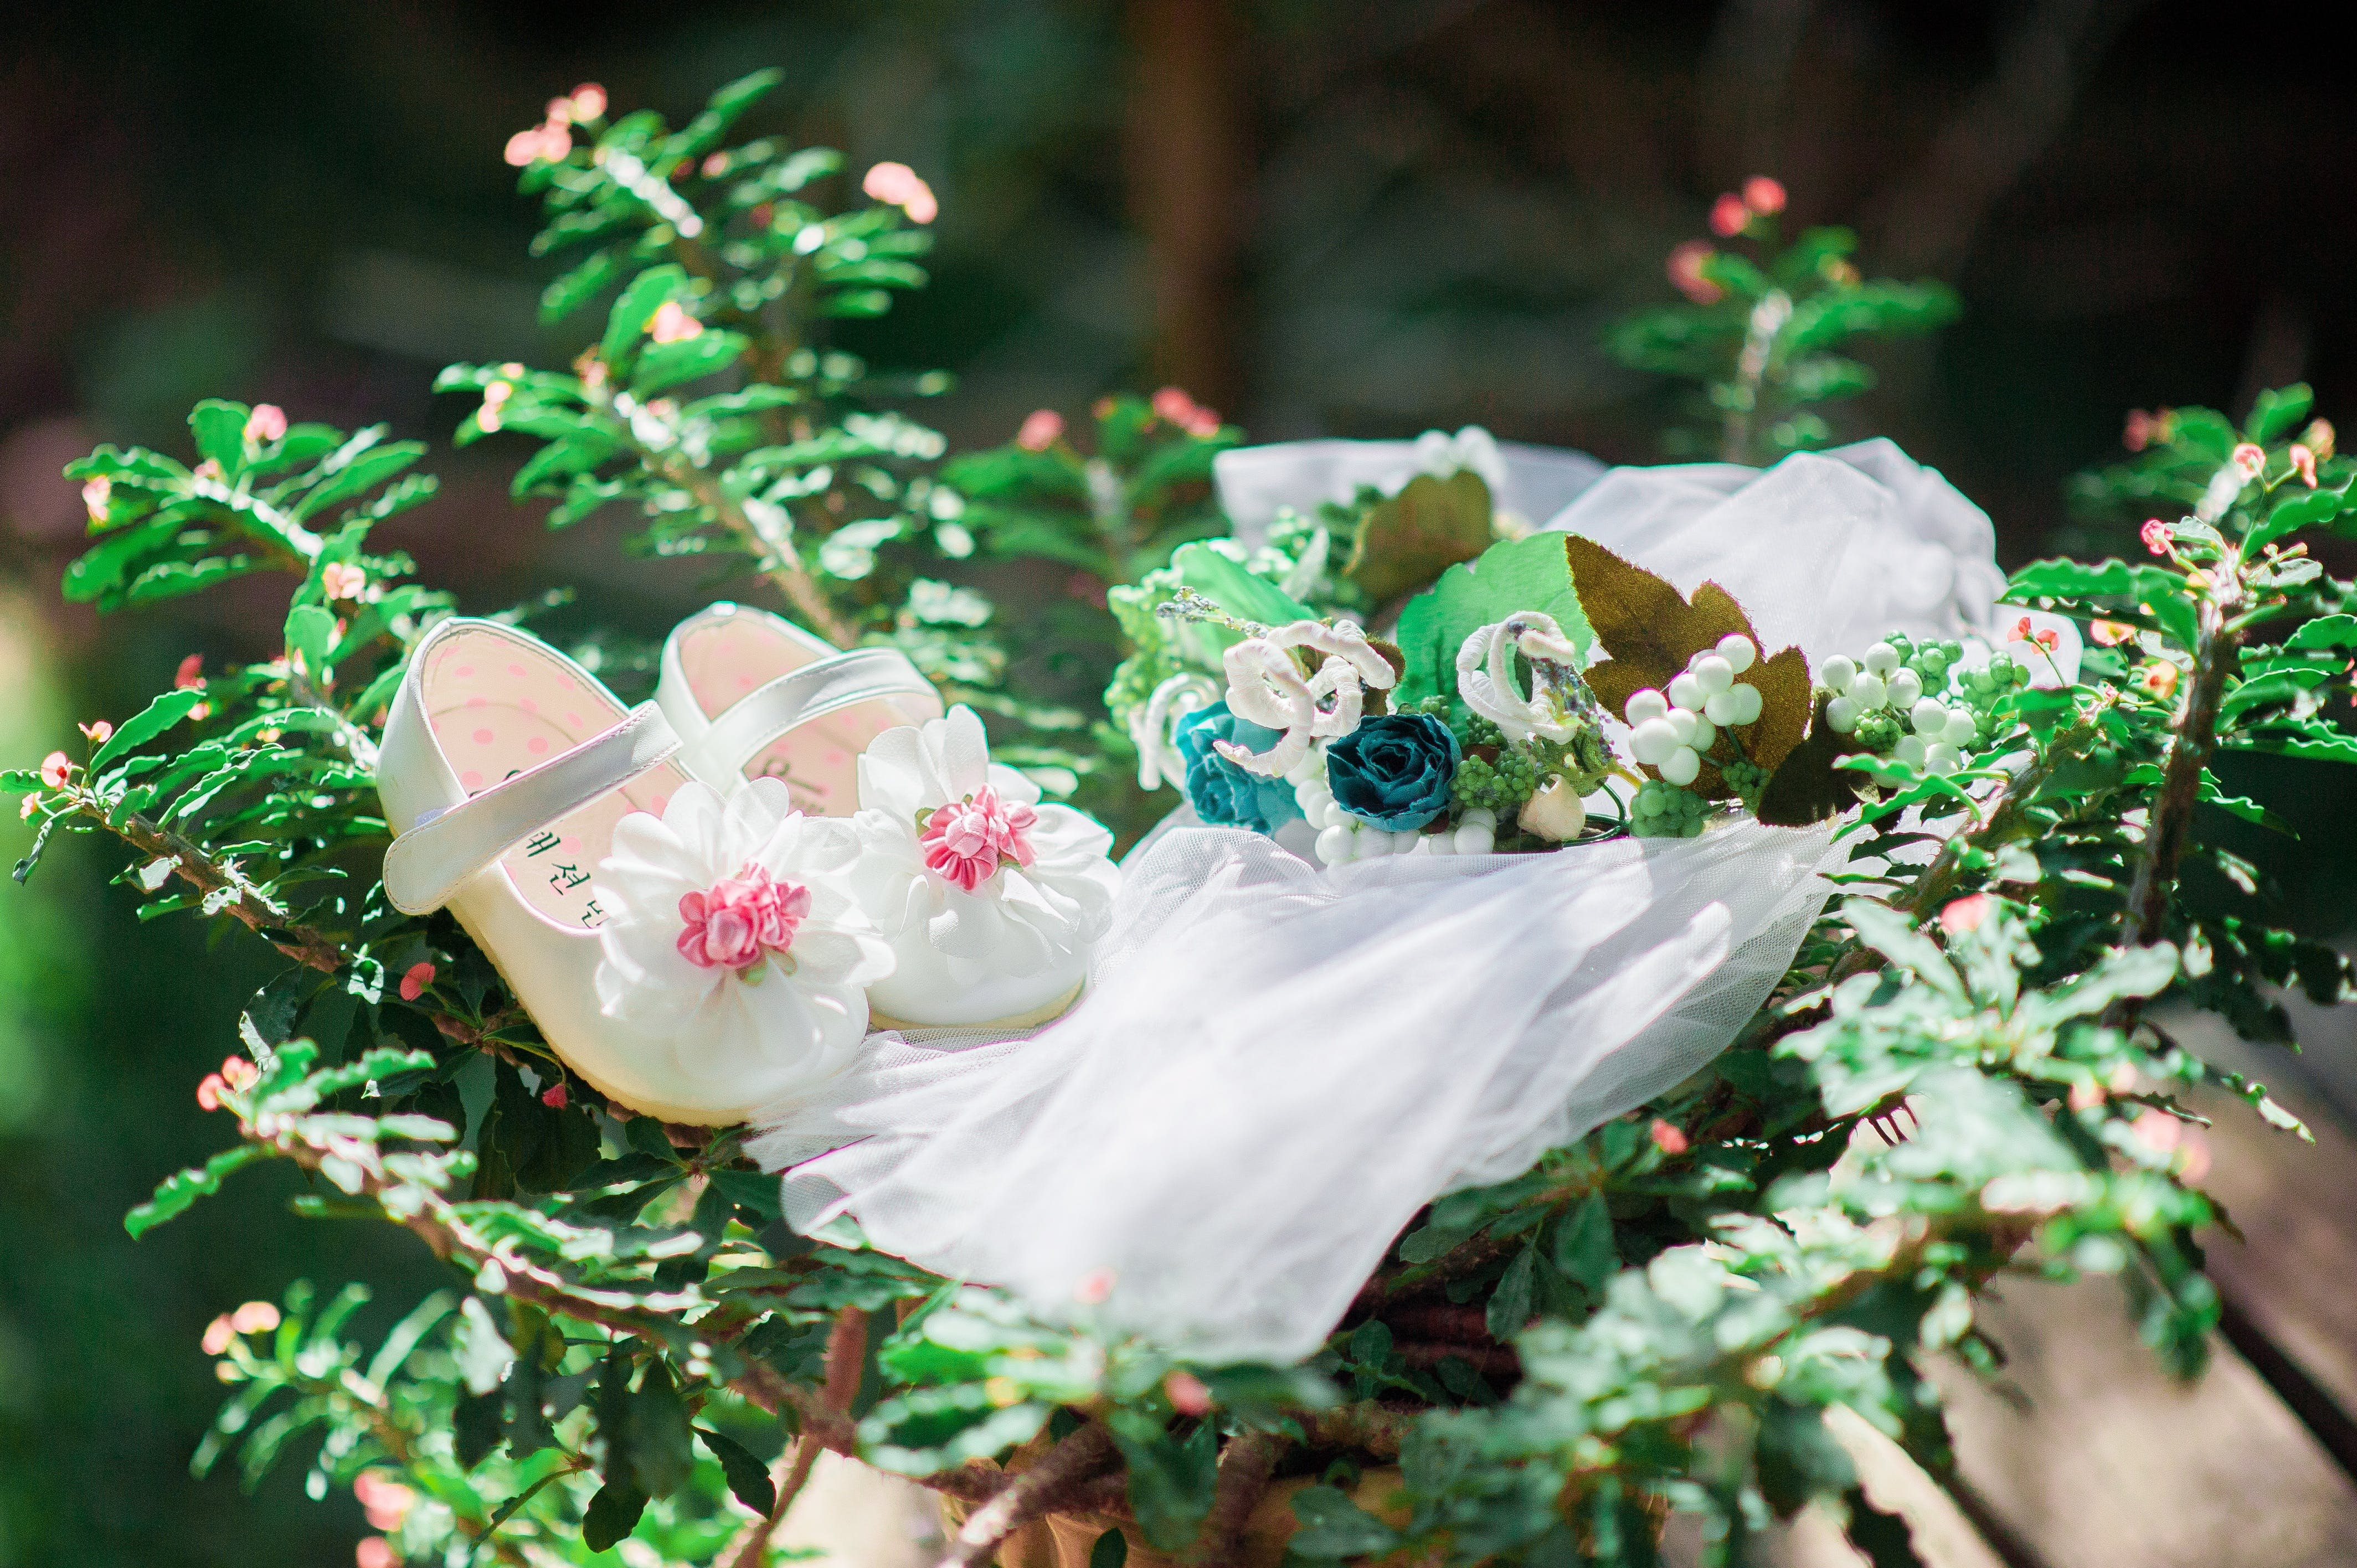 Pair of White Mary Jane Shoes on Green Leafed Plant